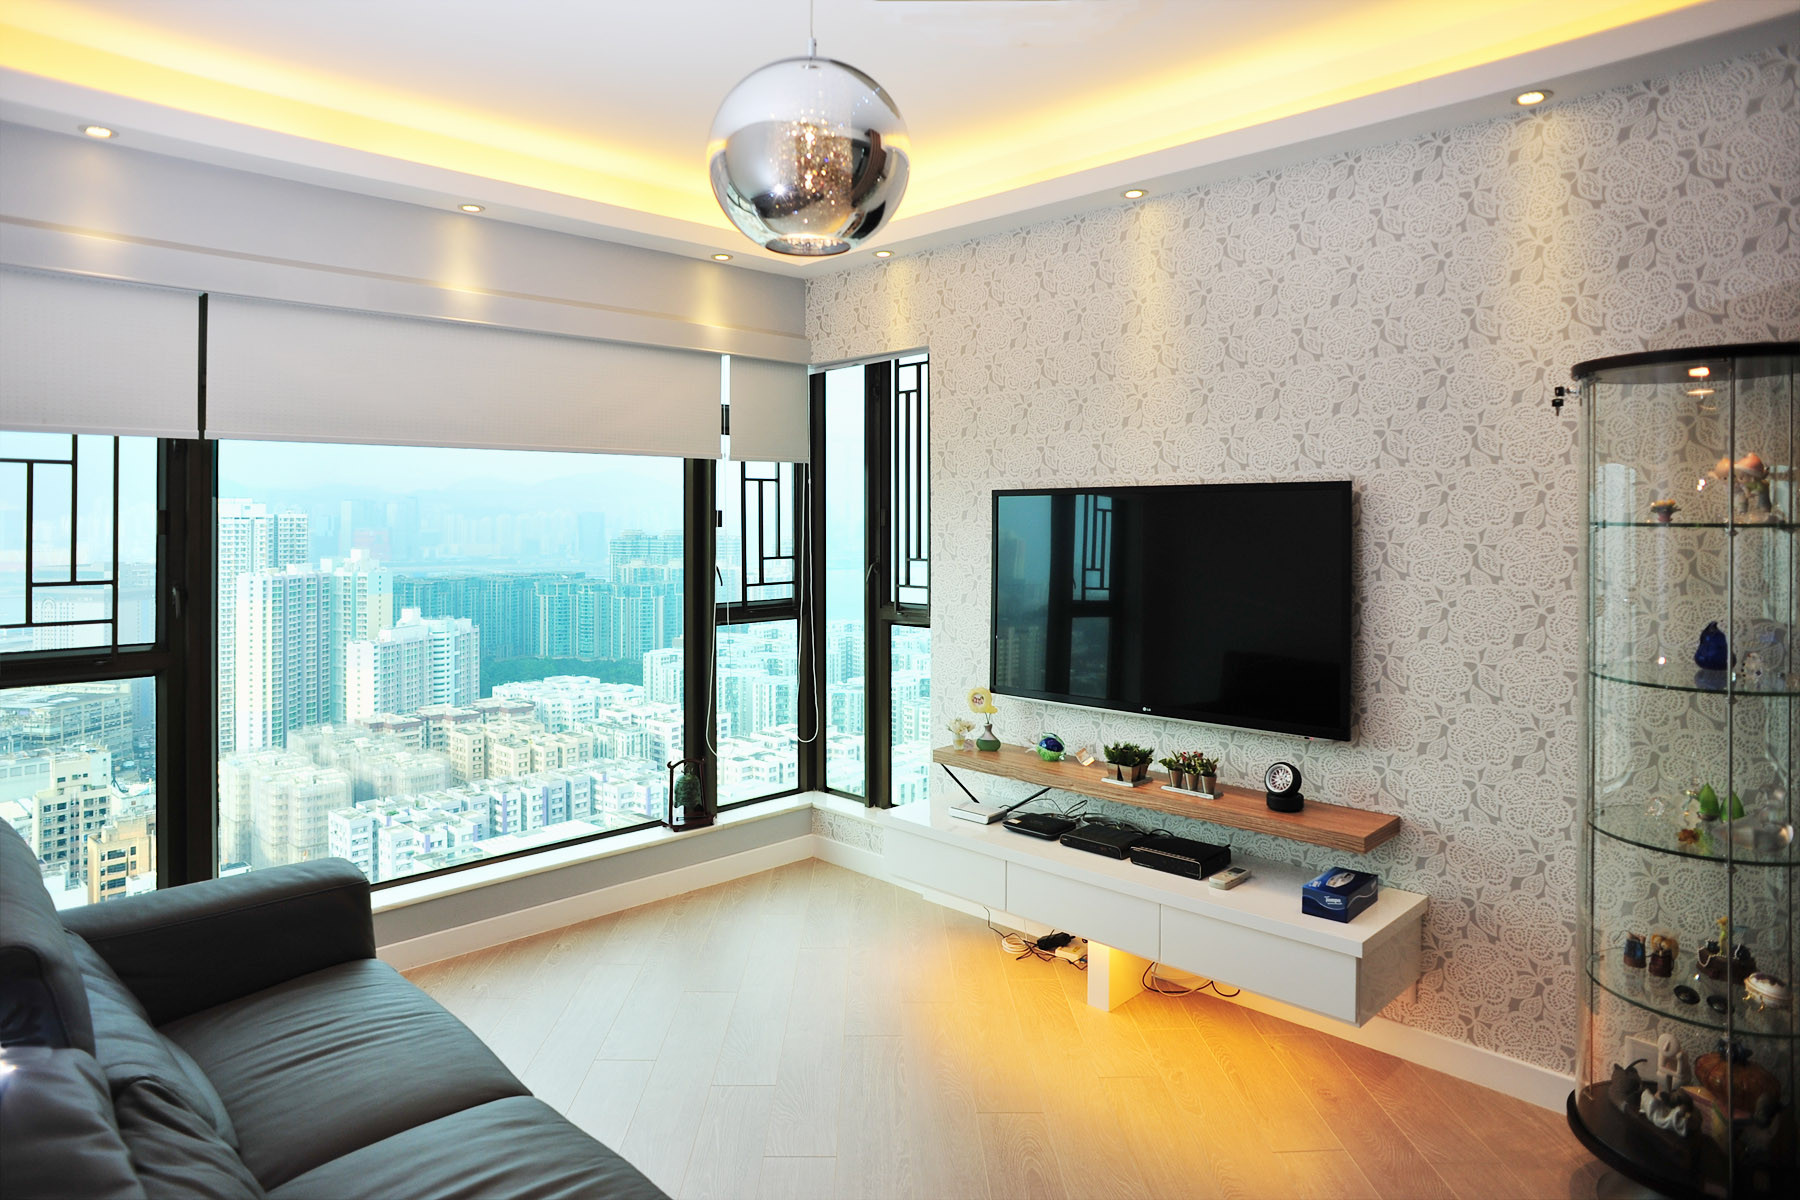 Interior design and space plan